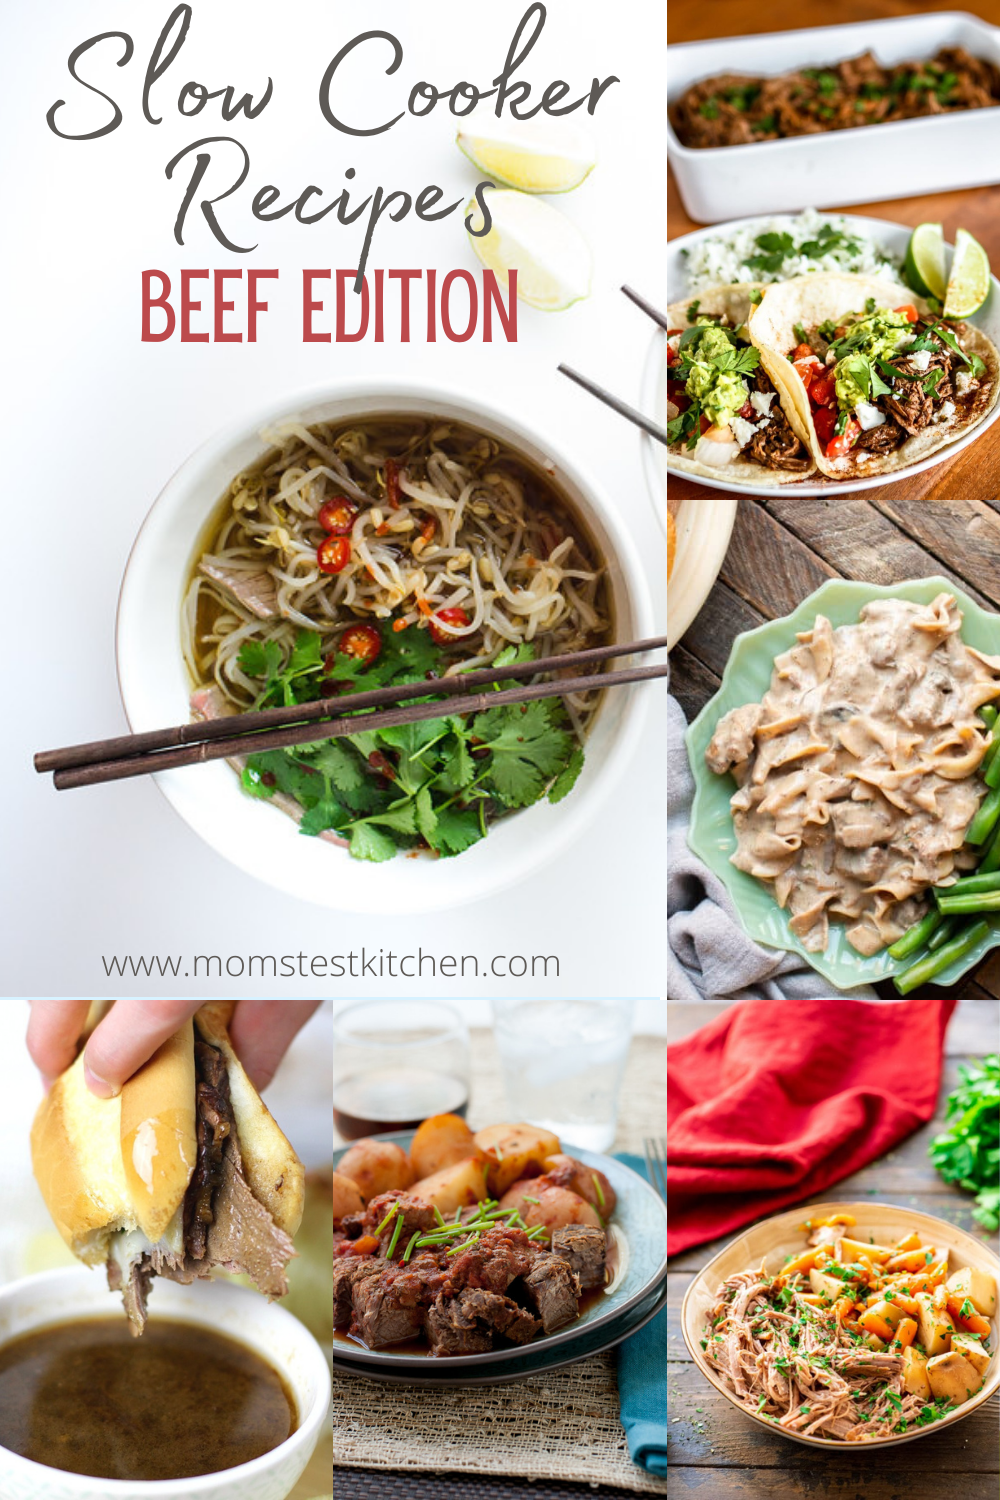 We've rounded up 40 of the simplest, man pleasing, red meat filled Slow Cooker Recipes to help make dinner time super quick and easy!